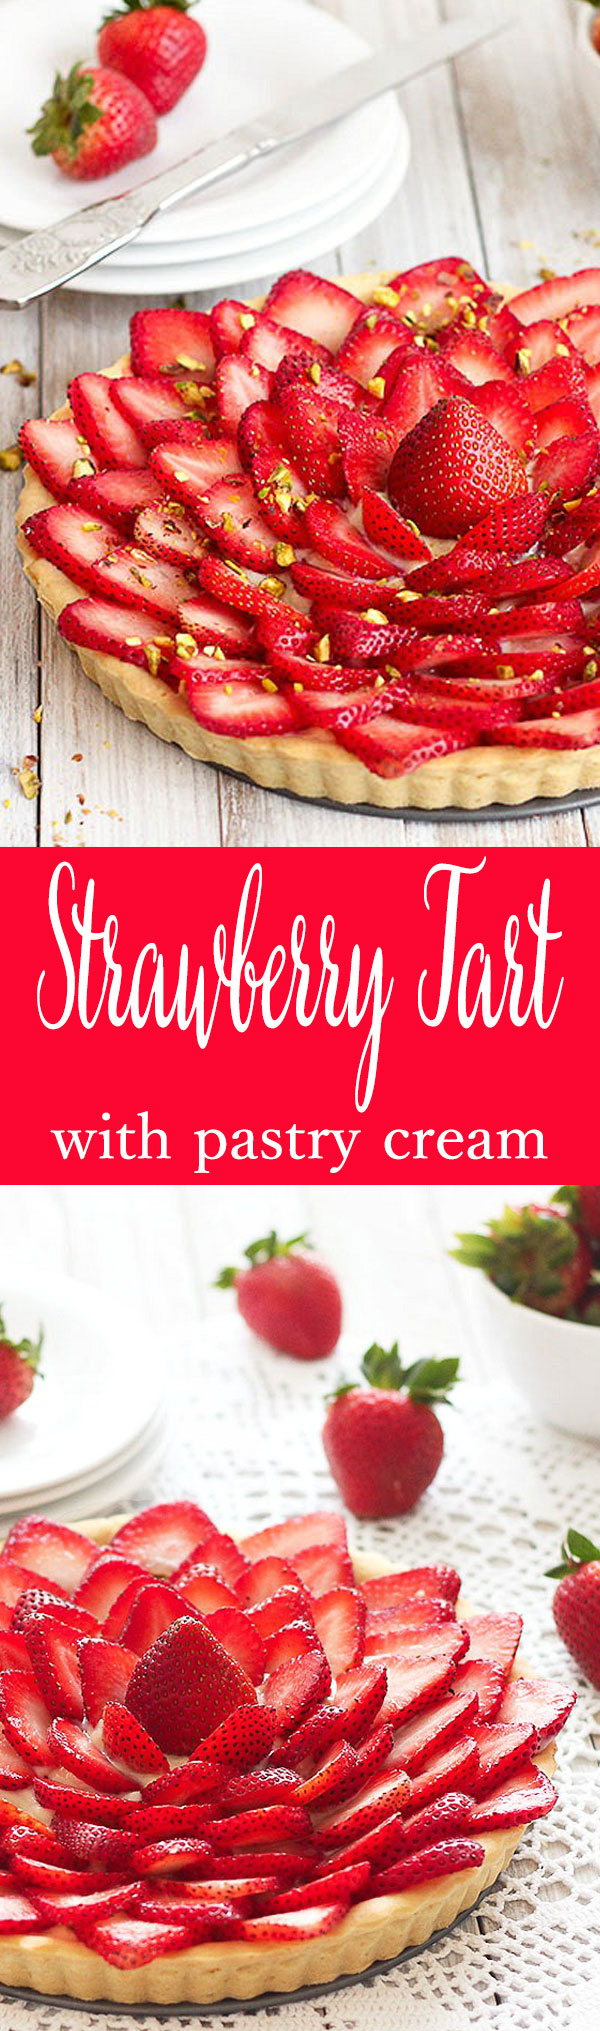 This strawberry tart comes together easily. First you blind-bake a pastry shell, then you fill it with a silky-smooth lemon pastry cream. The strawberries add the perfect finishing touch, decorating the tart beautifully. #tart #strawberries #dessert #pastrycream #easyrecipe #baking | aseasyasapplepie.com